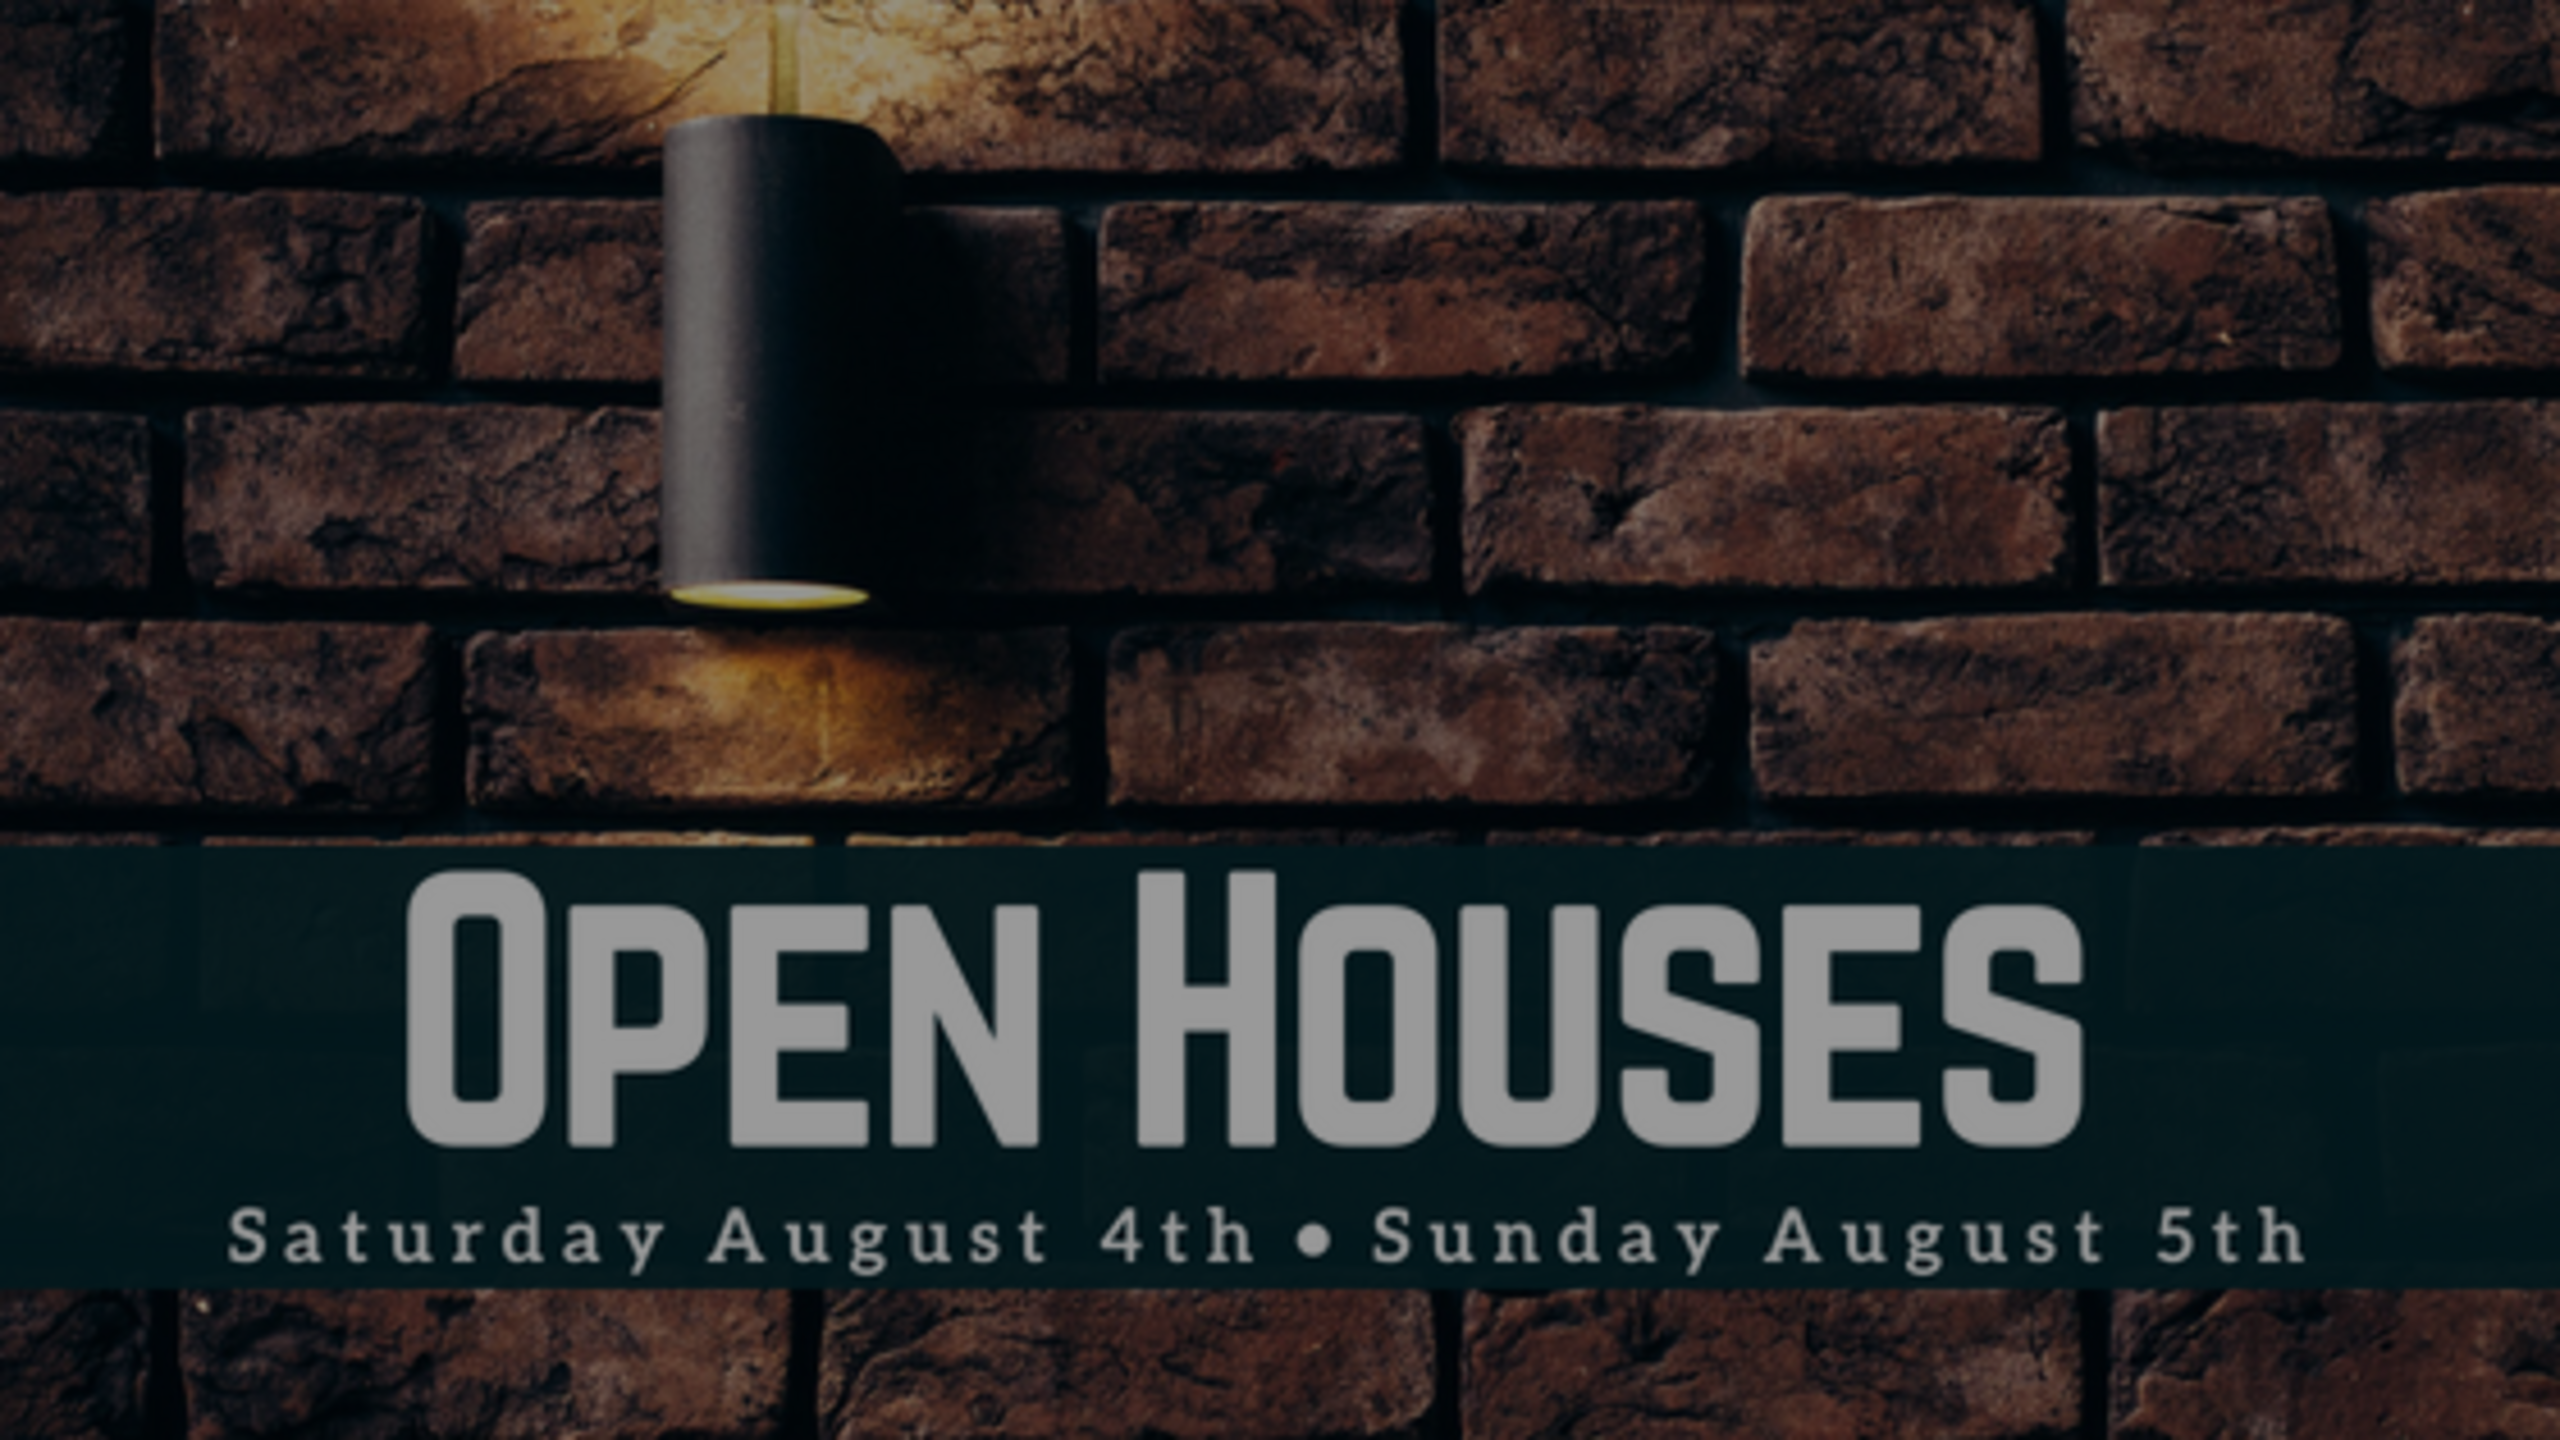 Our Open Houses: Weekend of 8/4 + 8/5